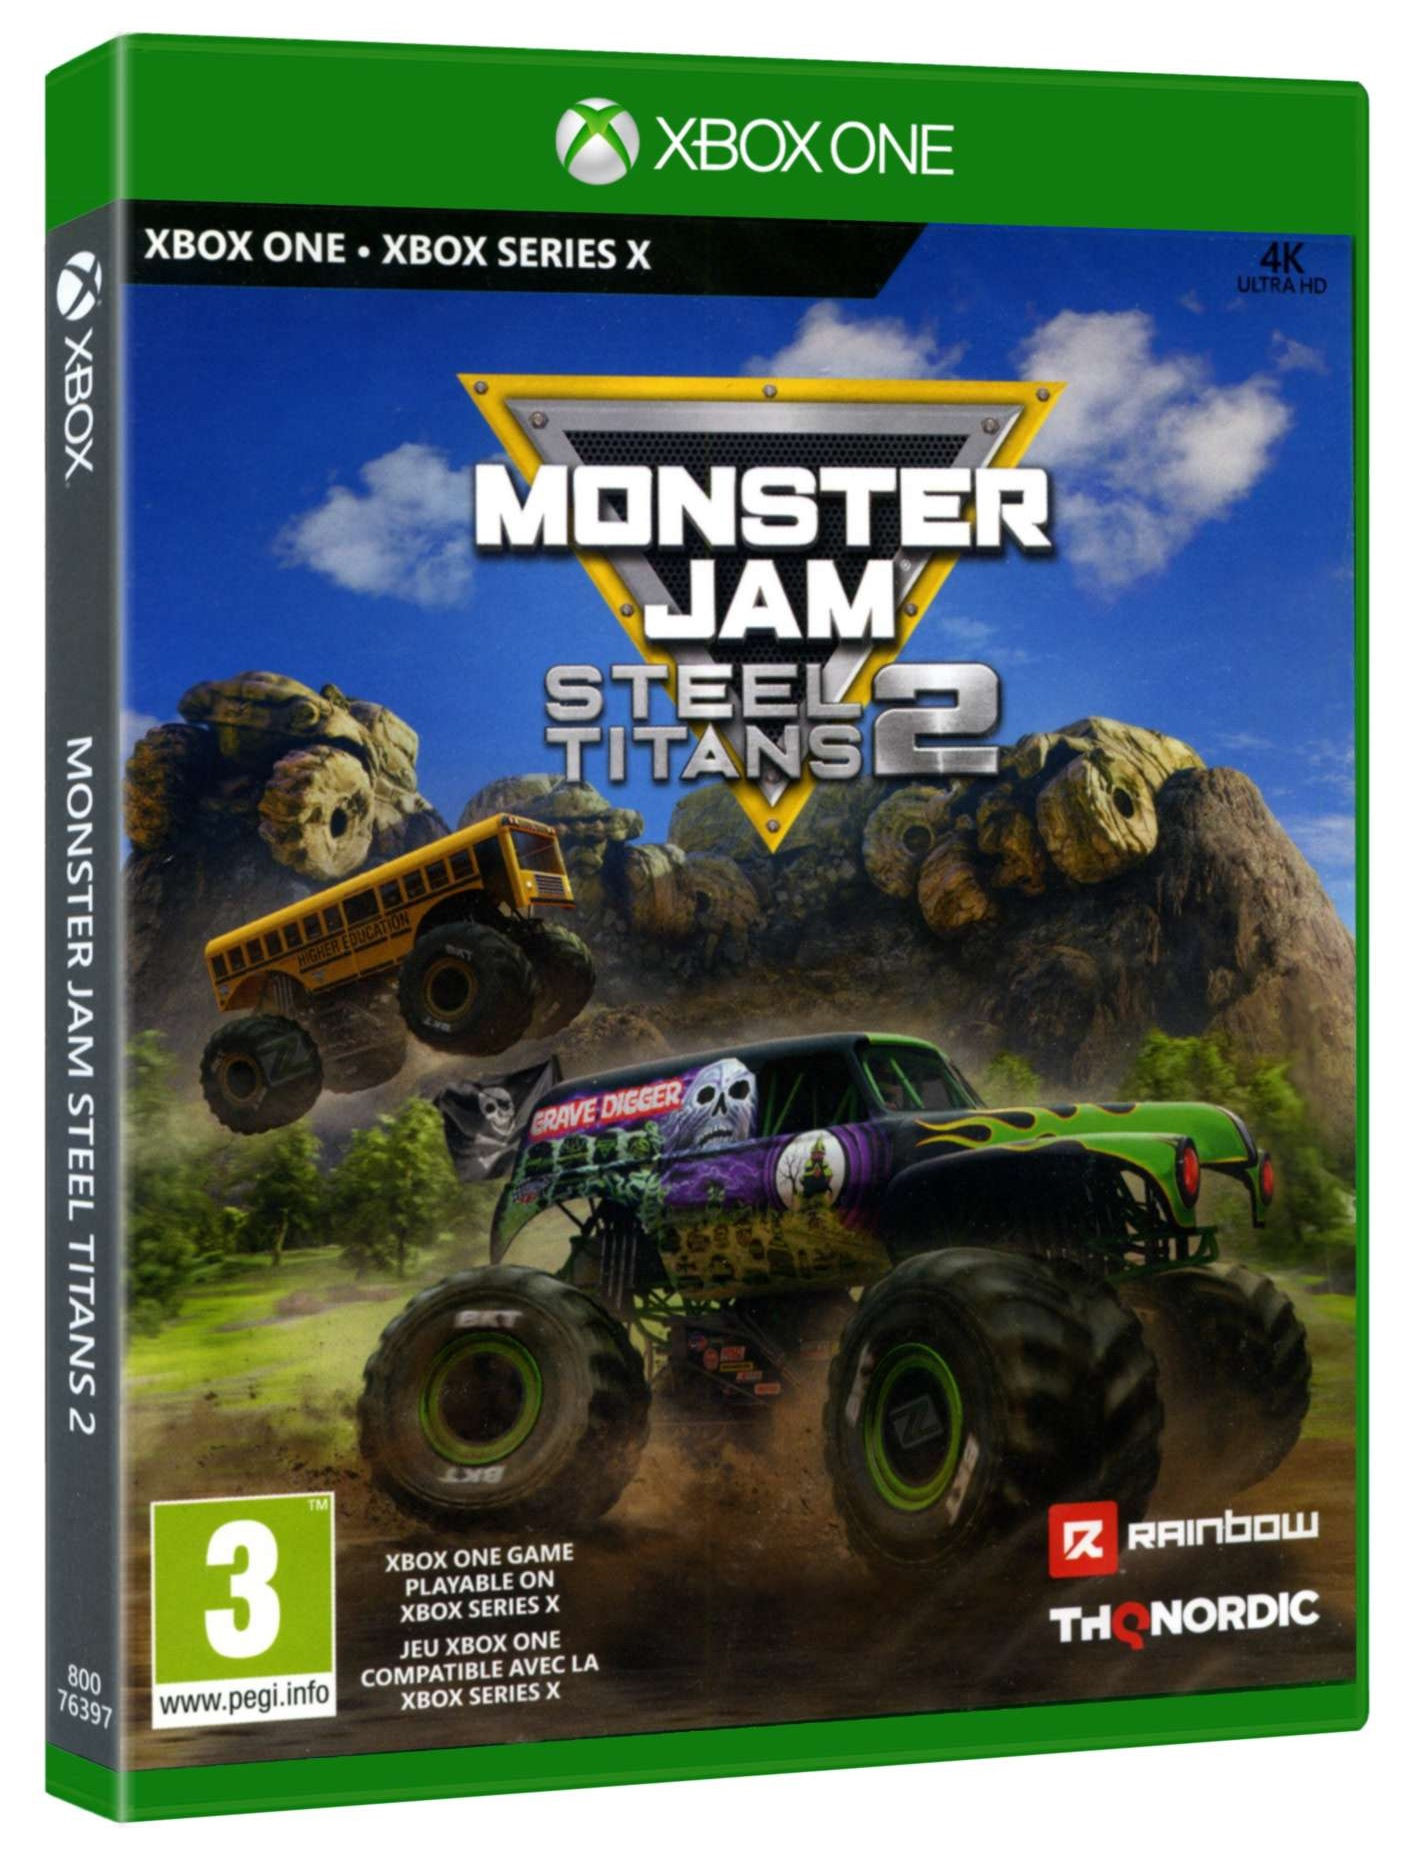 THQ Monster Jam Steel Titans 2 Xbox Series X Game